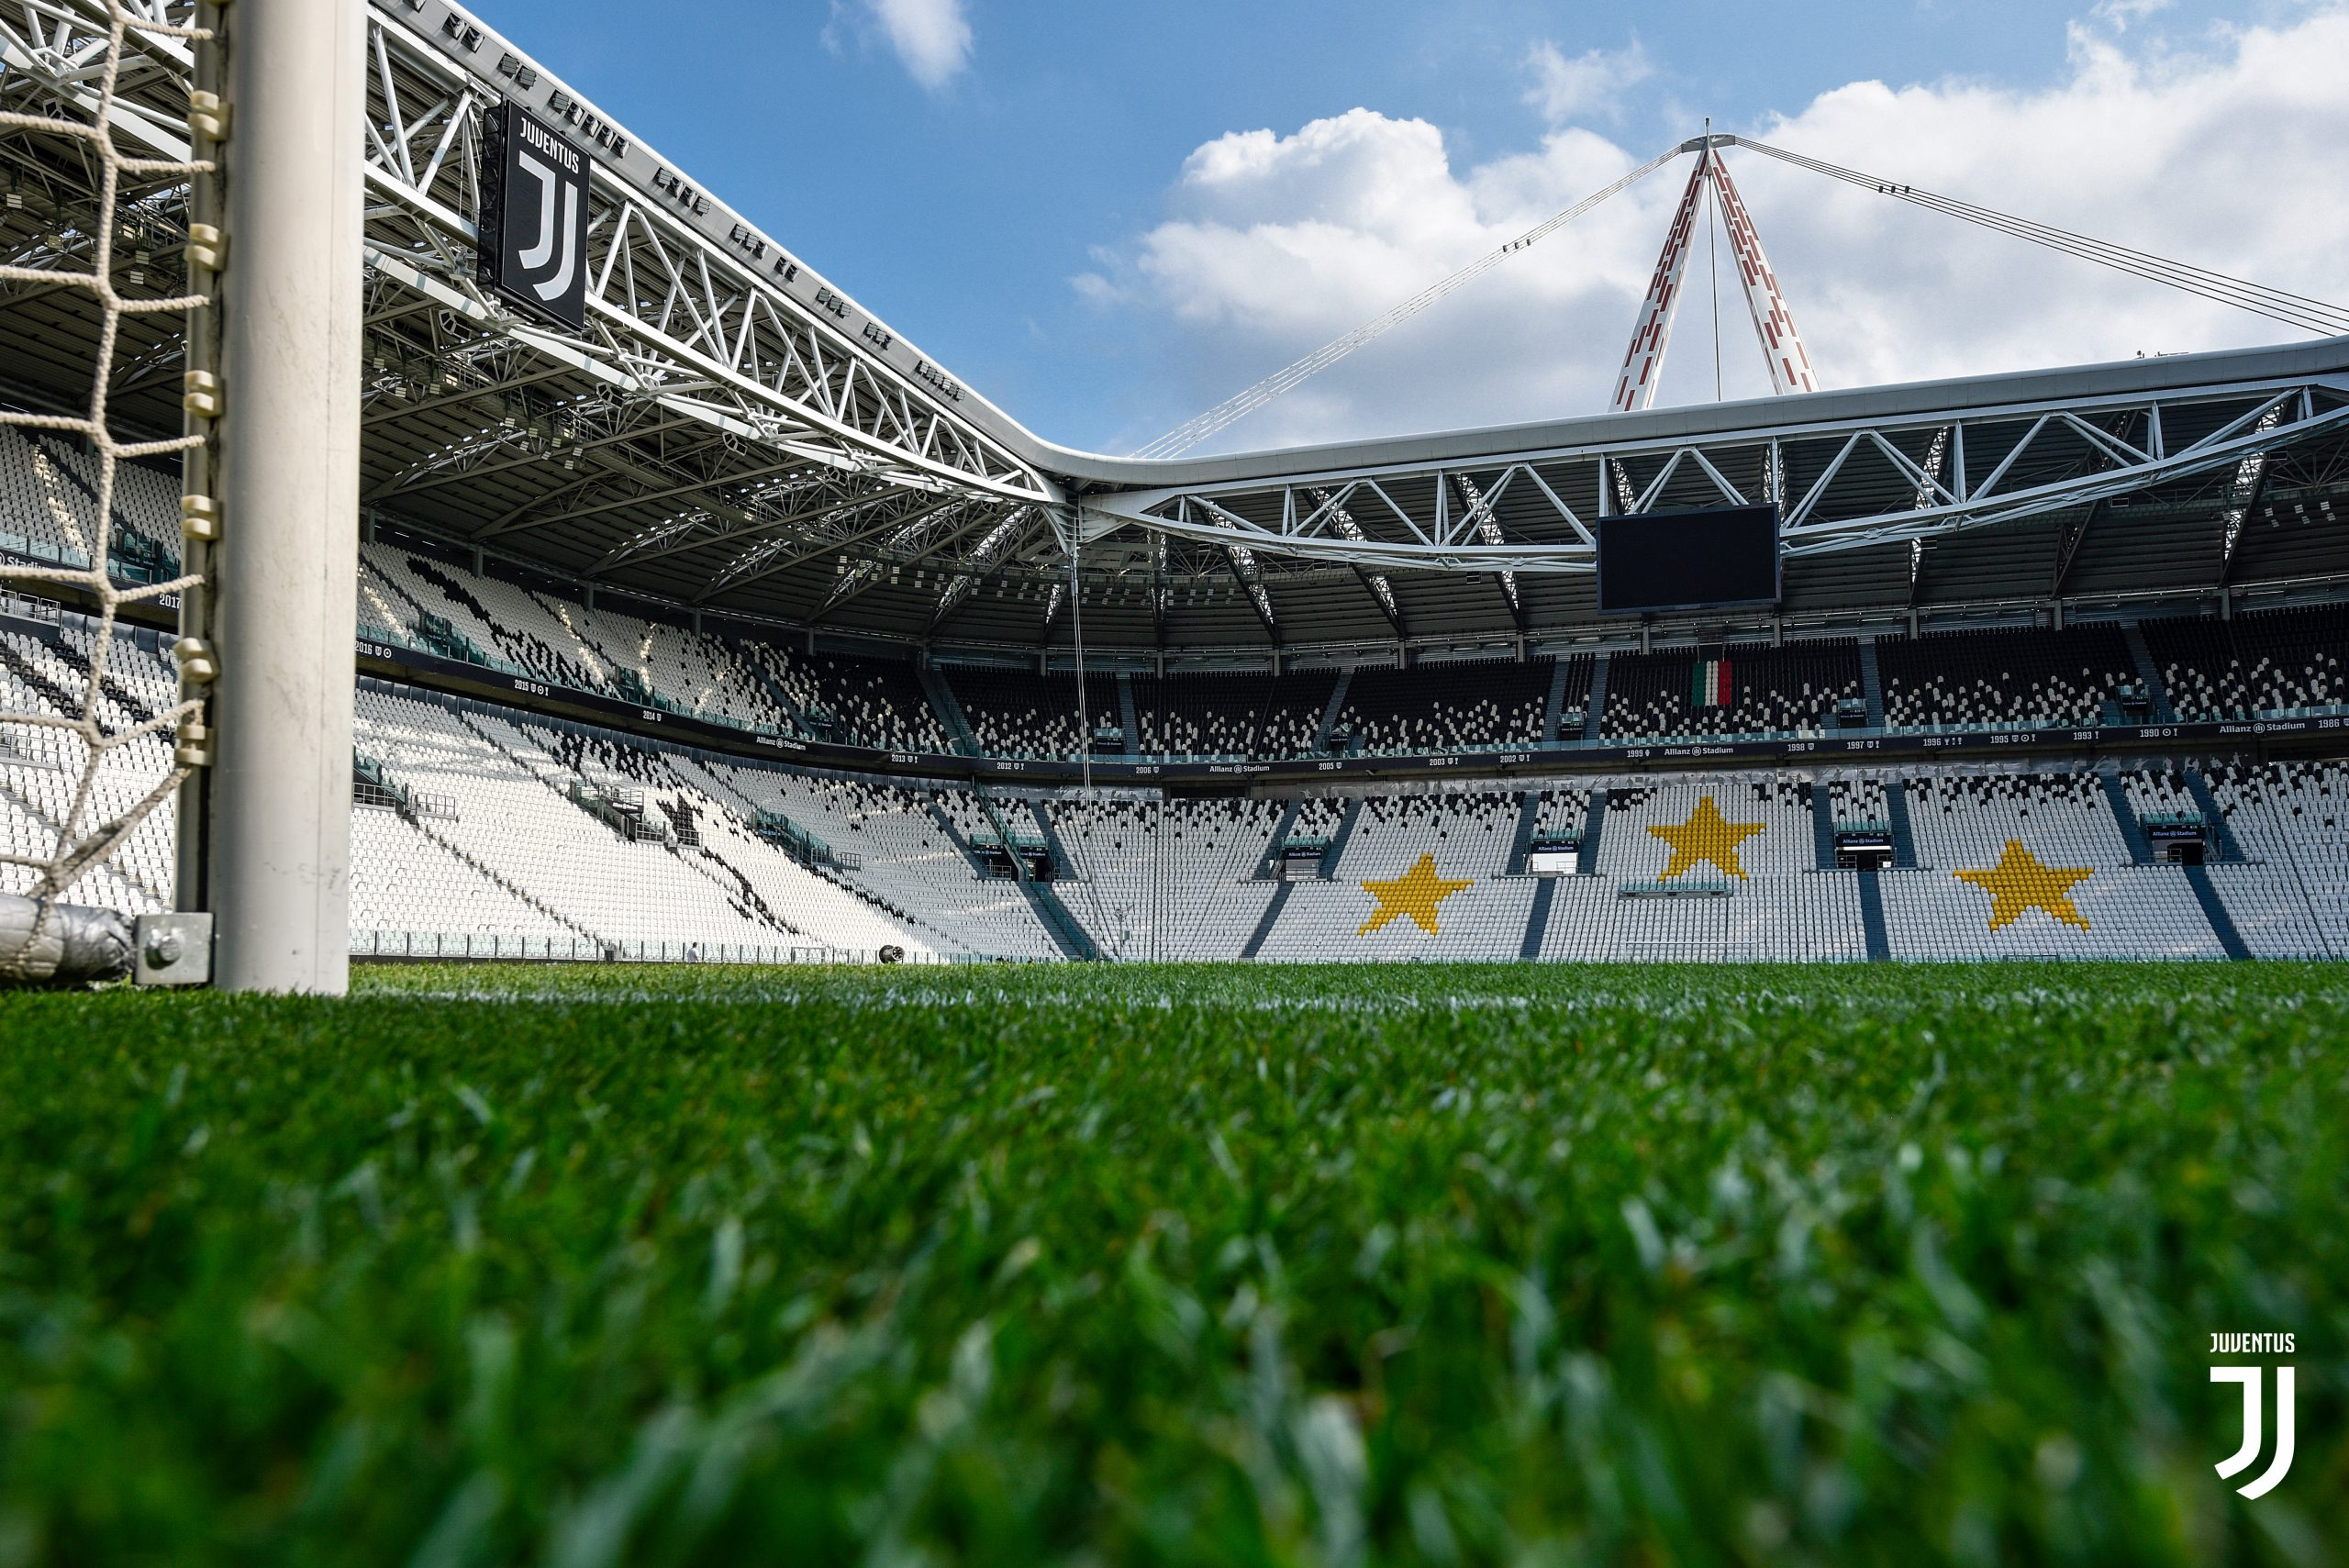 juventus stadium reopening request denied juvefc com juventus stadium reopening request